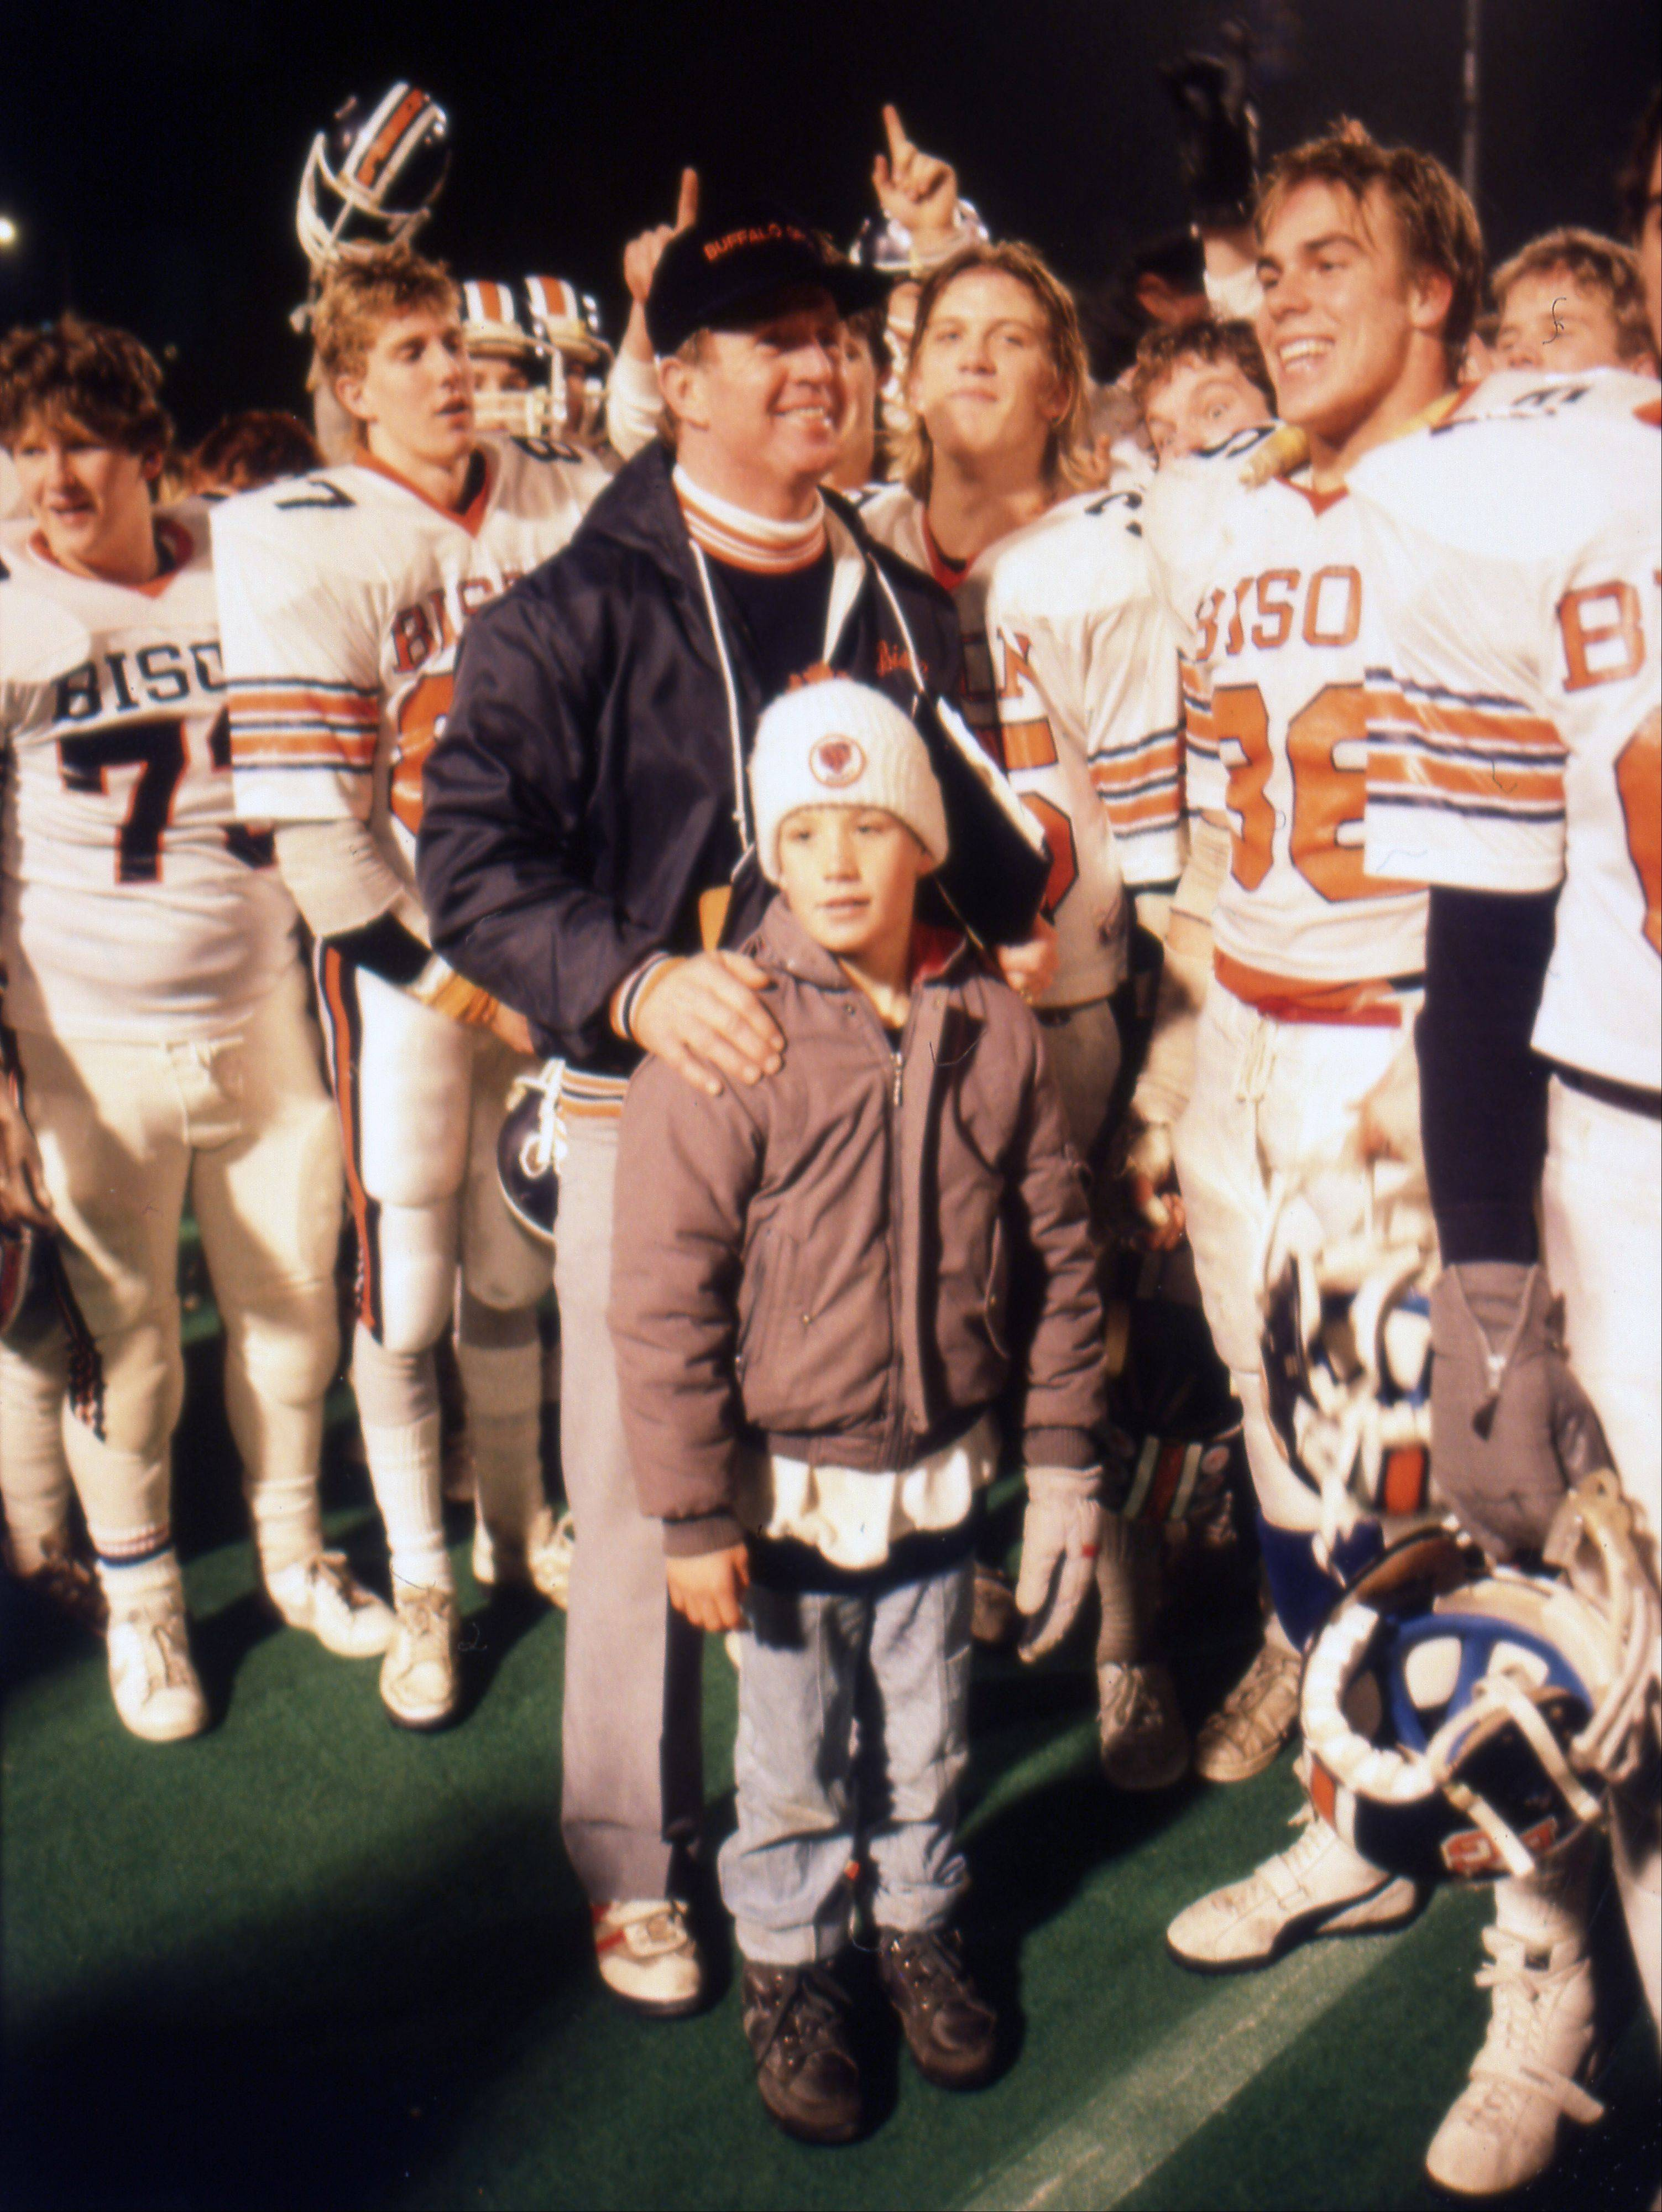 Former Buffalo Grove fotball coach Grant Balney on the sidelines with his team following the Bison's state championship effort on Nov. 29, 1986 at Ilinois State University.